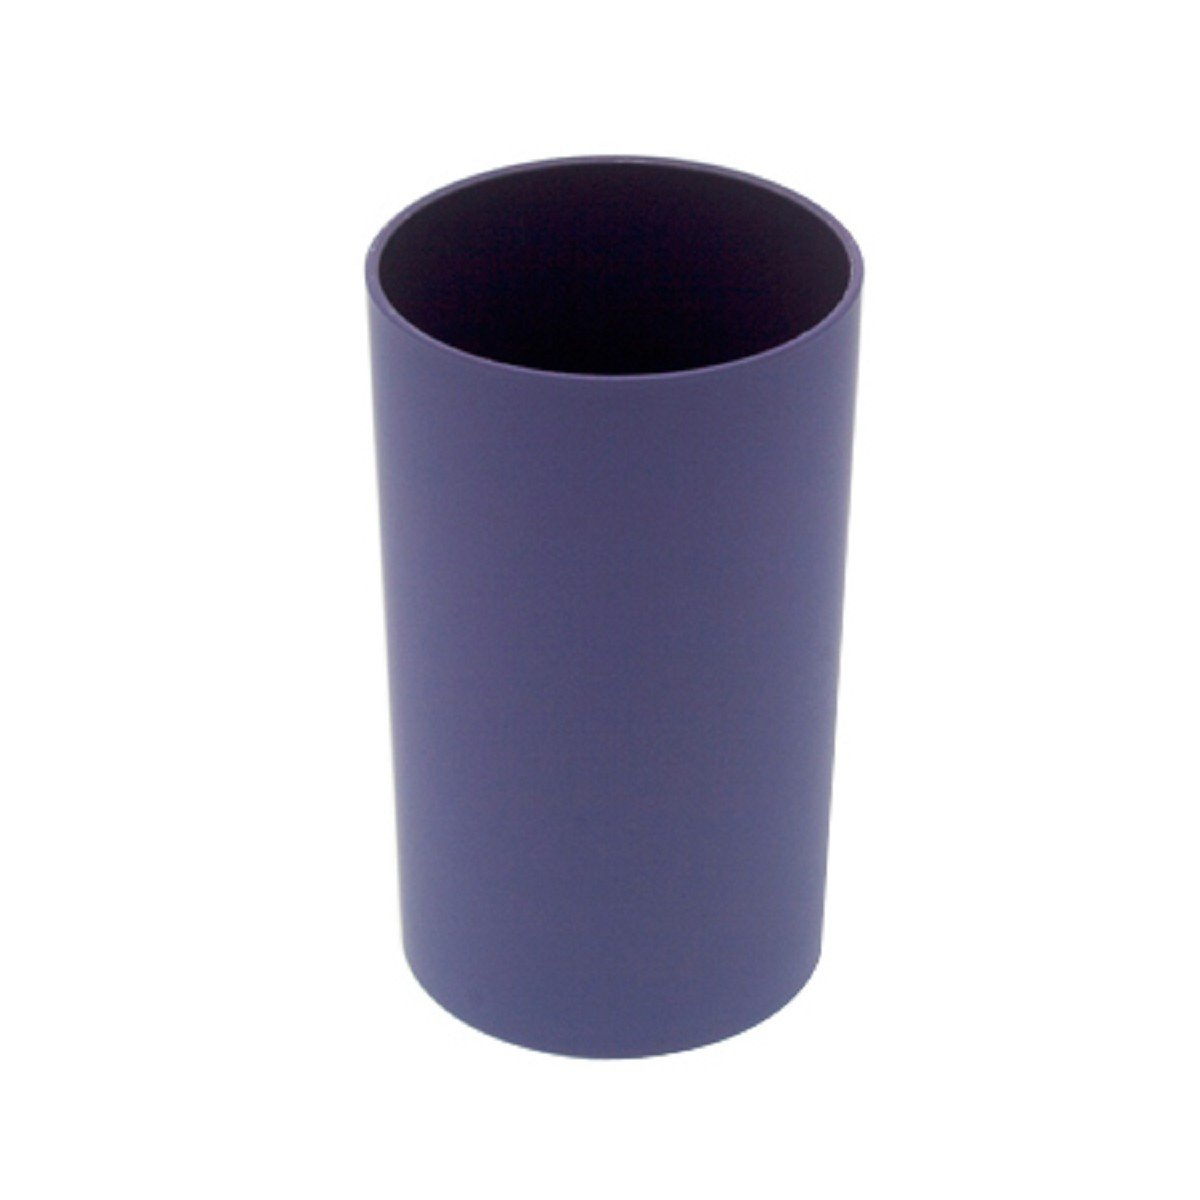 'Carpemodo Toothbrush Holder Tray Rubber Purple Lilac/Height 11 cm Diameter Approx. 6 cm/Round/Nicefli Collection